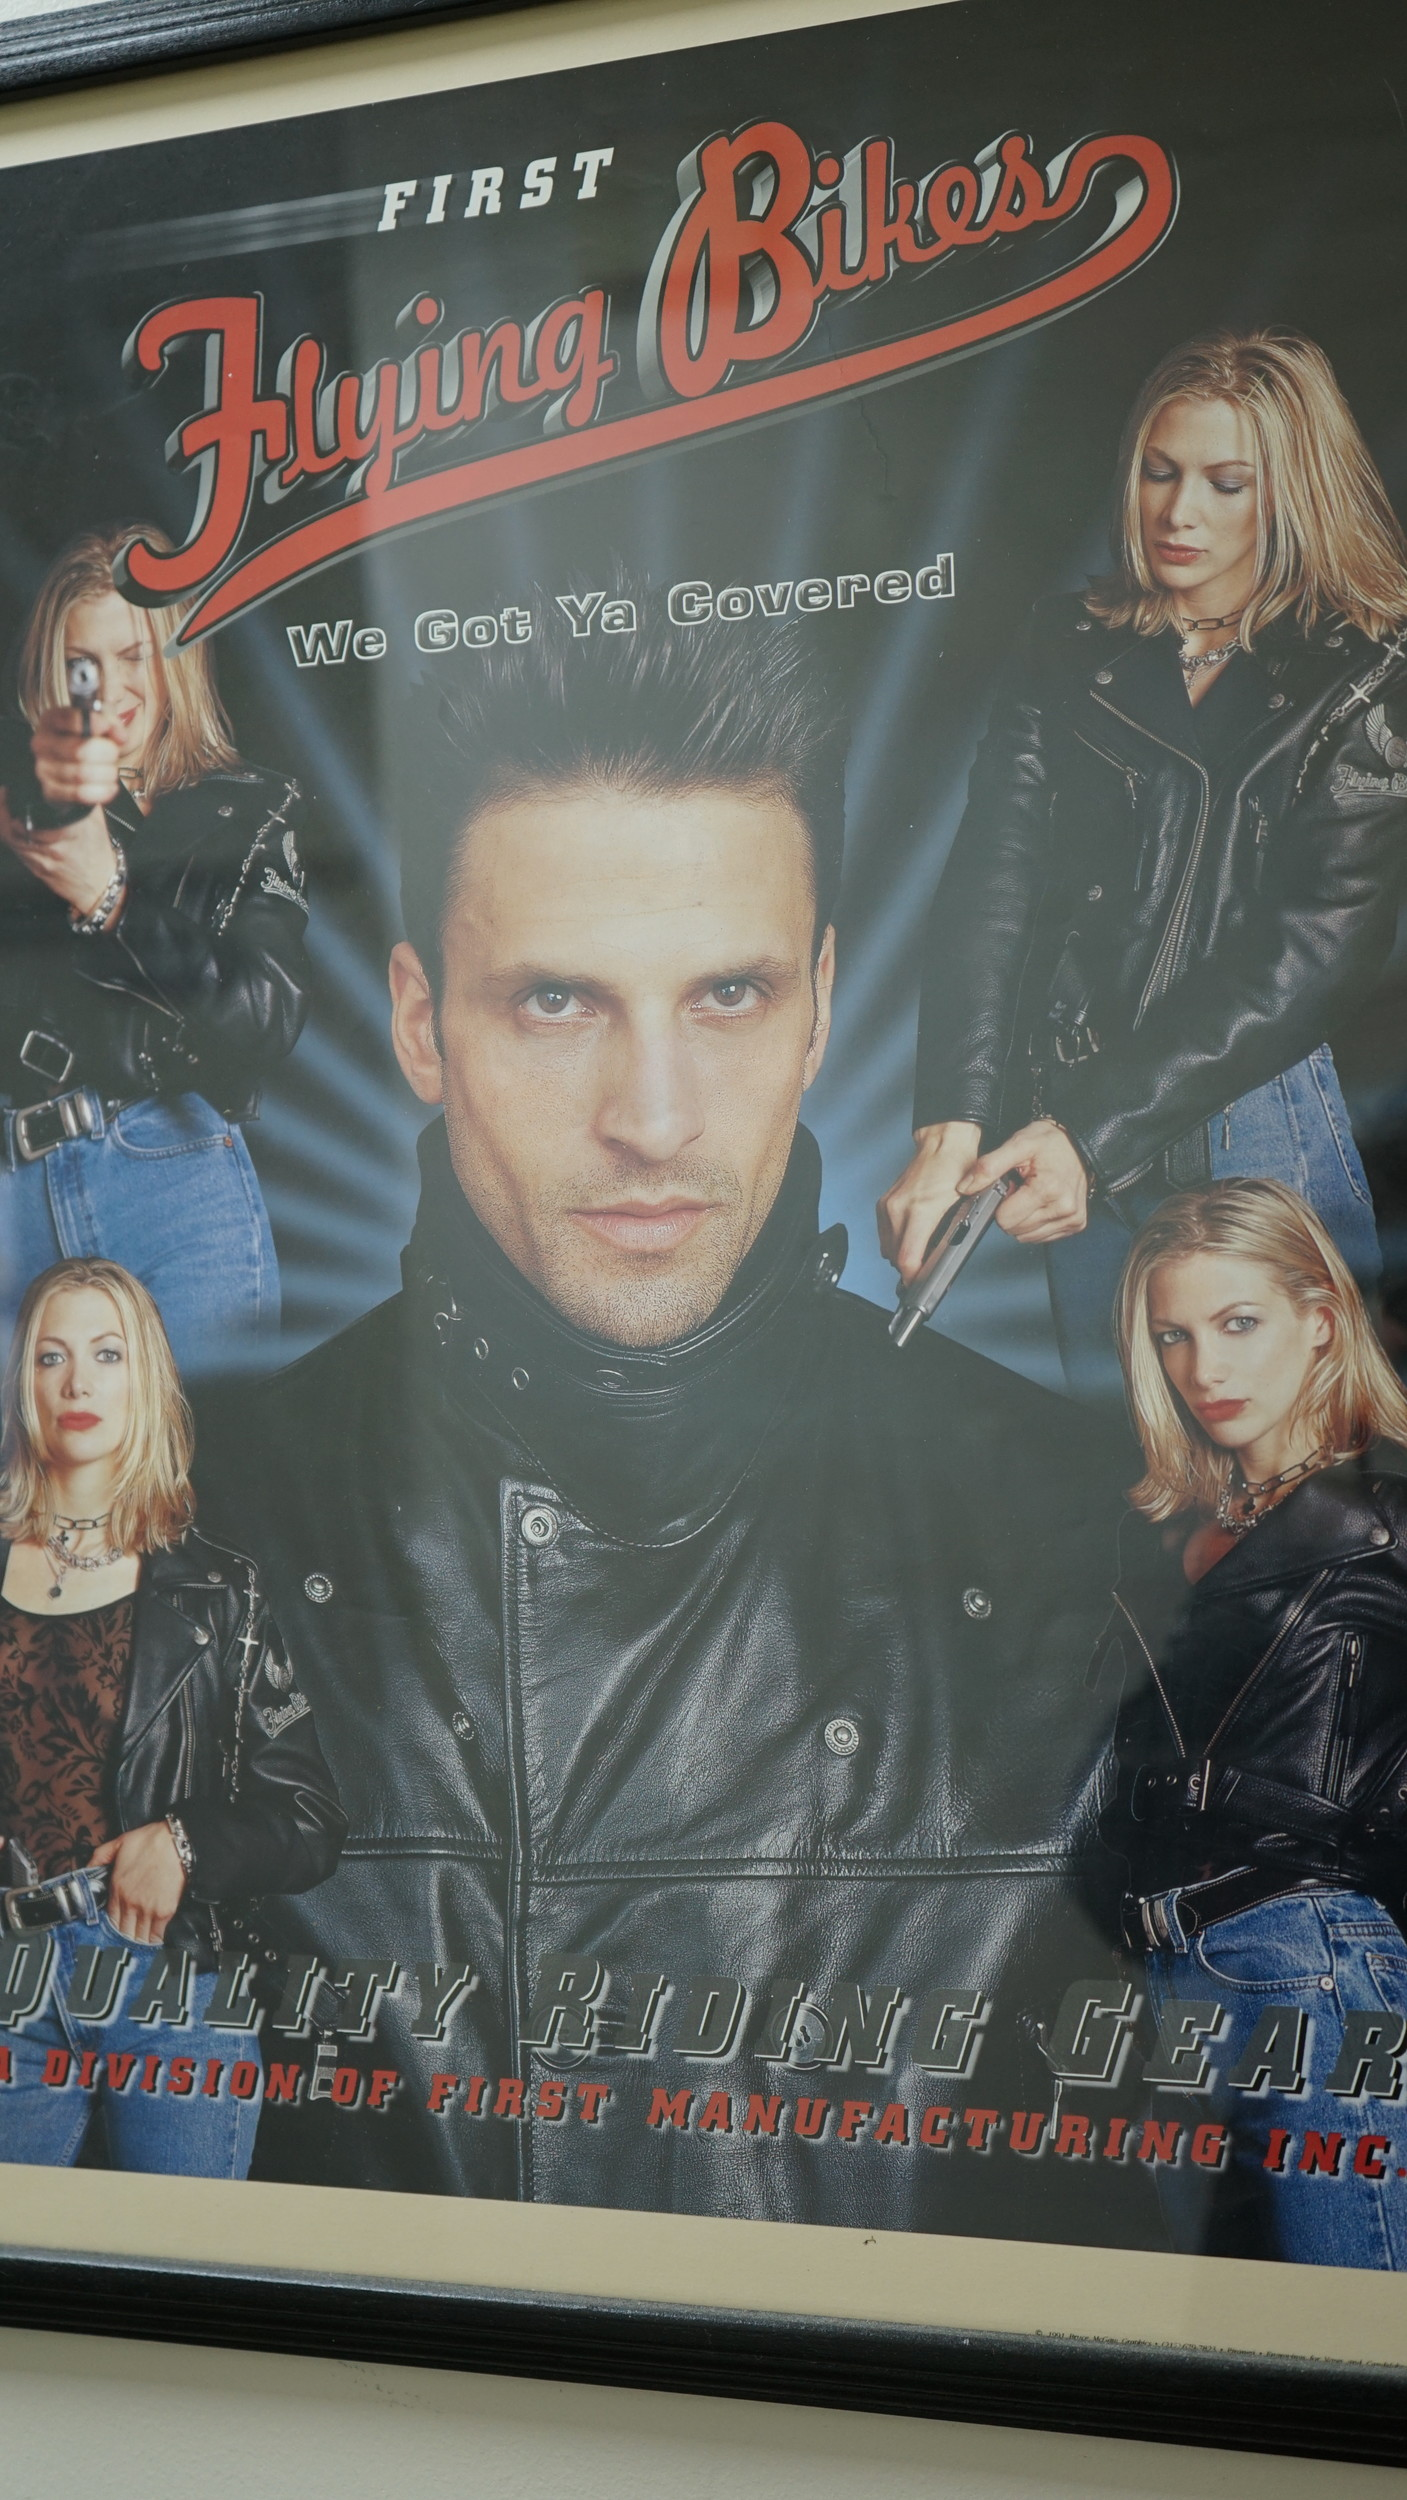 Another ad from the early '90s showcases the leather jacket brand's potential appeal to gun owners in the south.